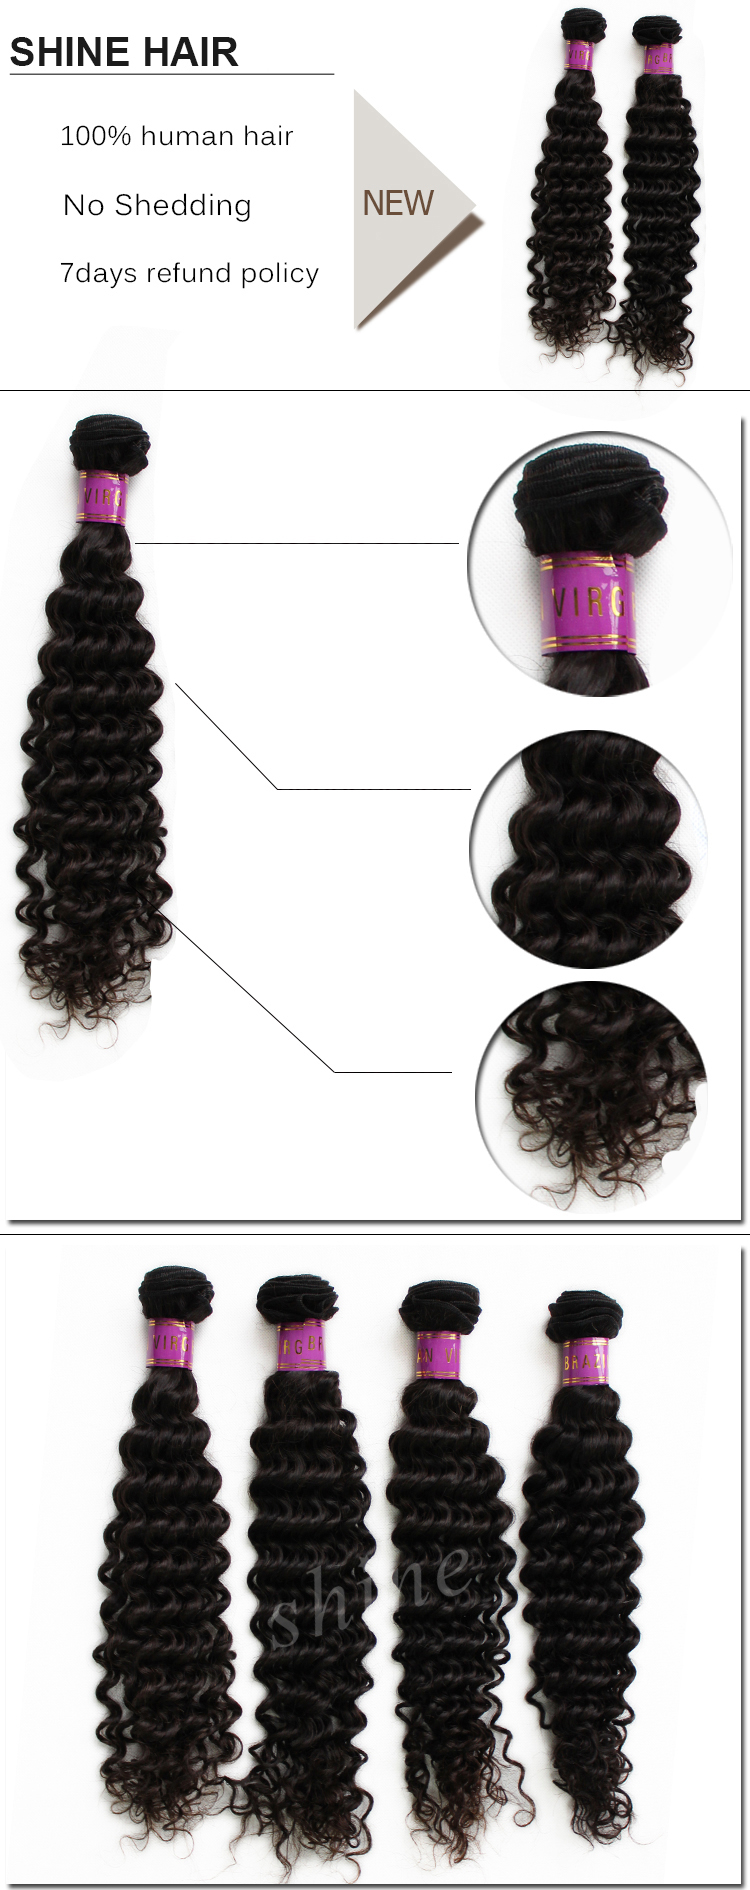 Black Hair Bundles